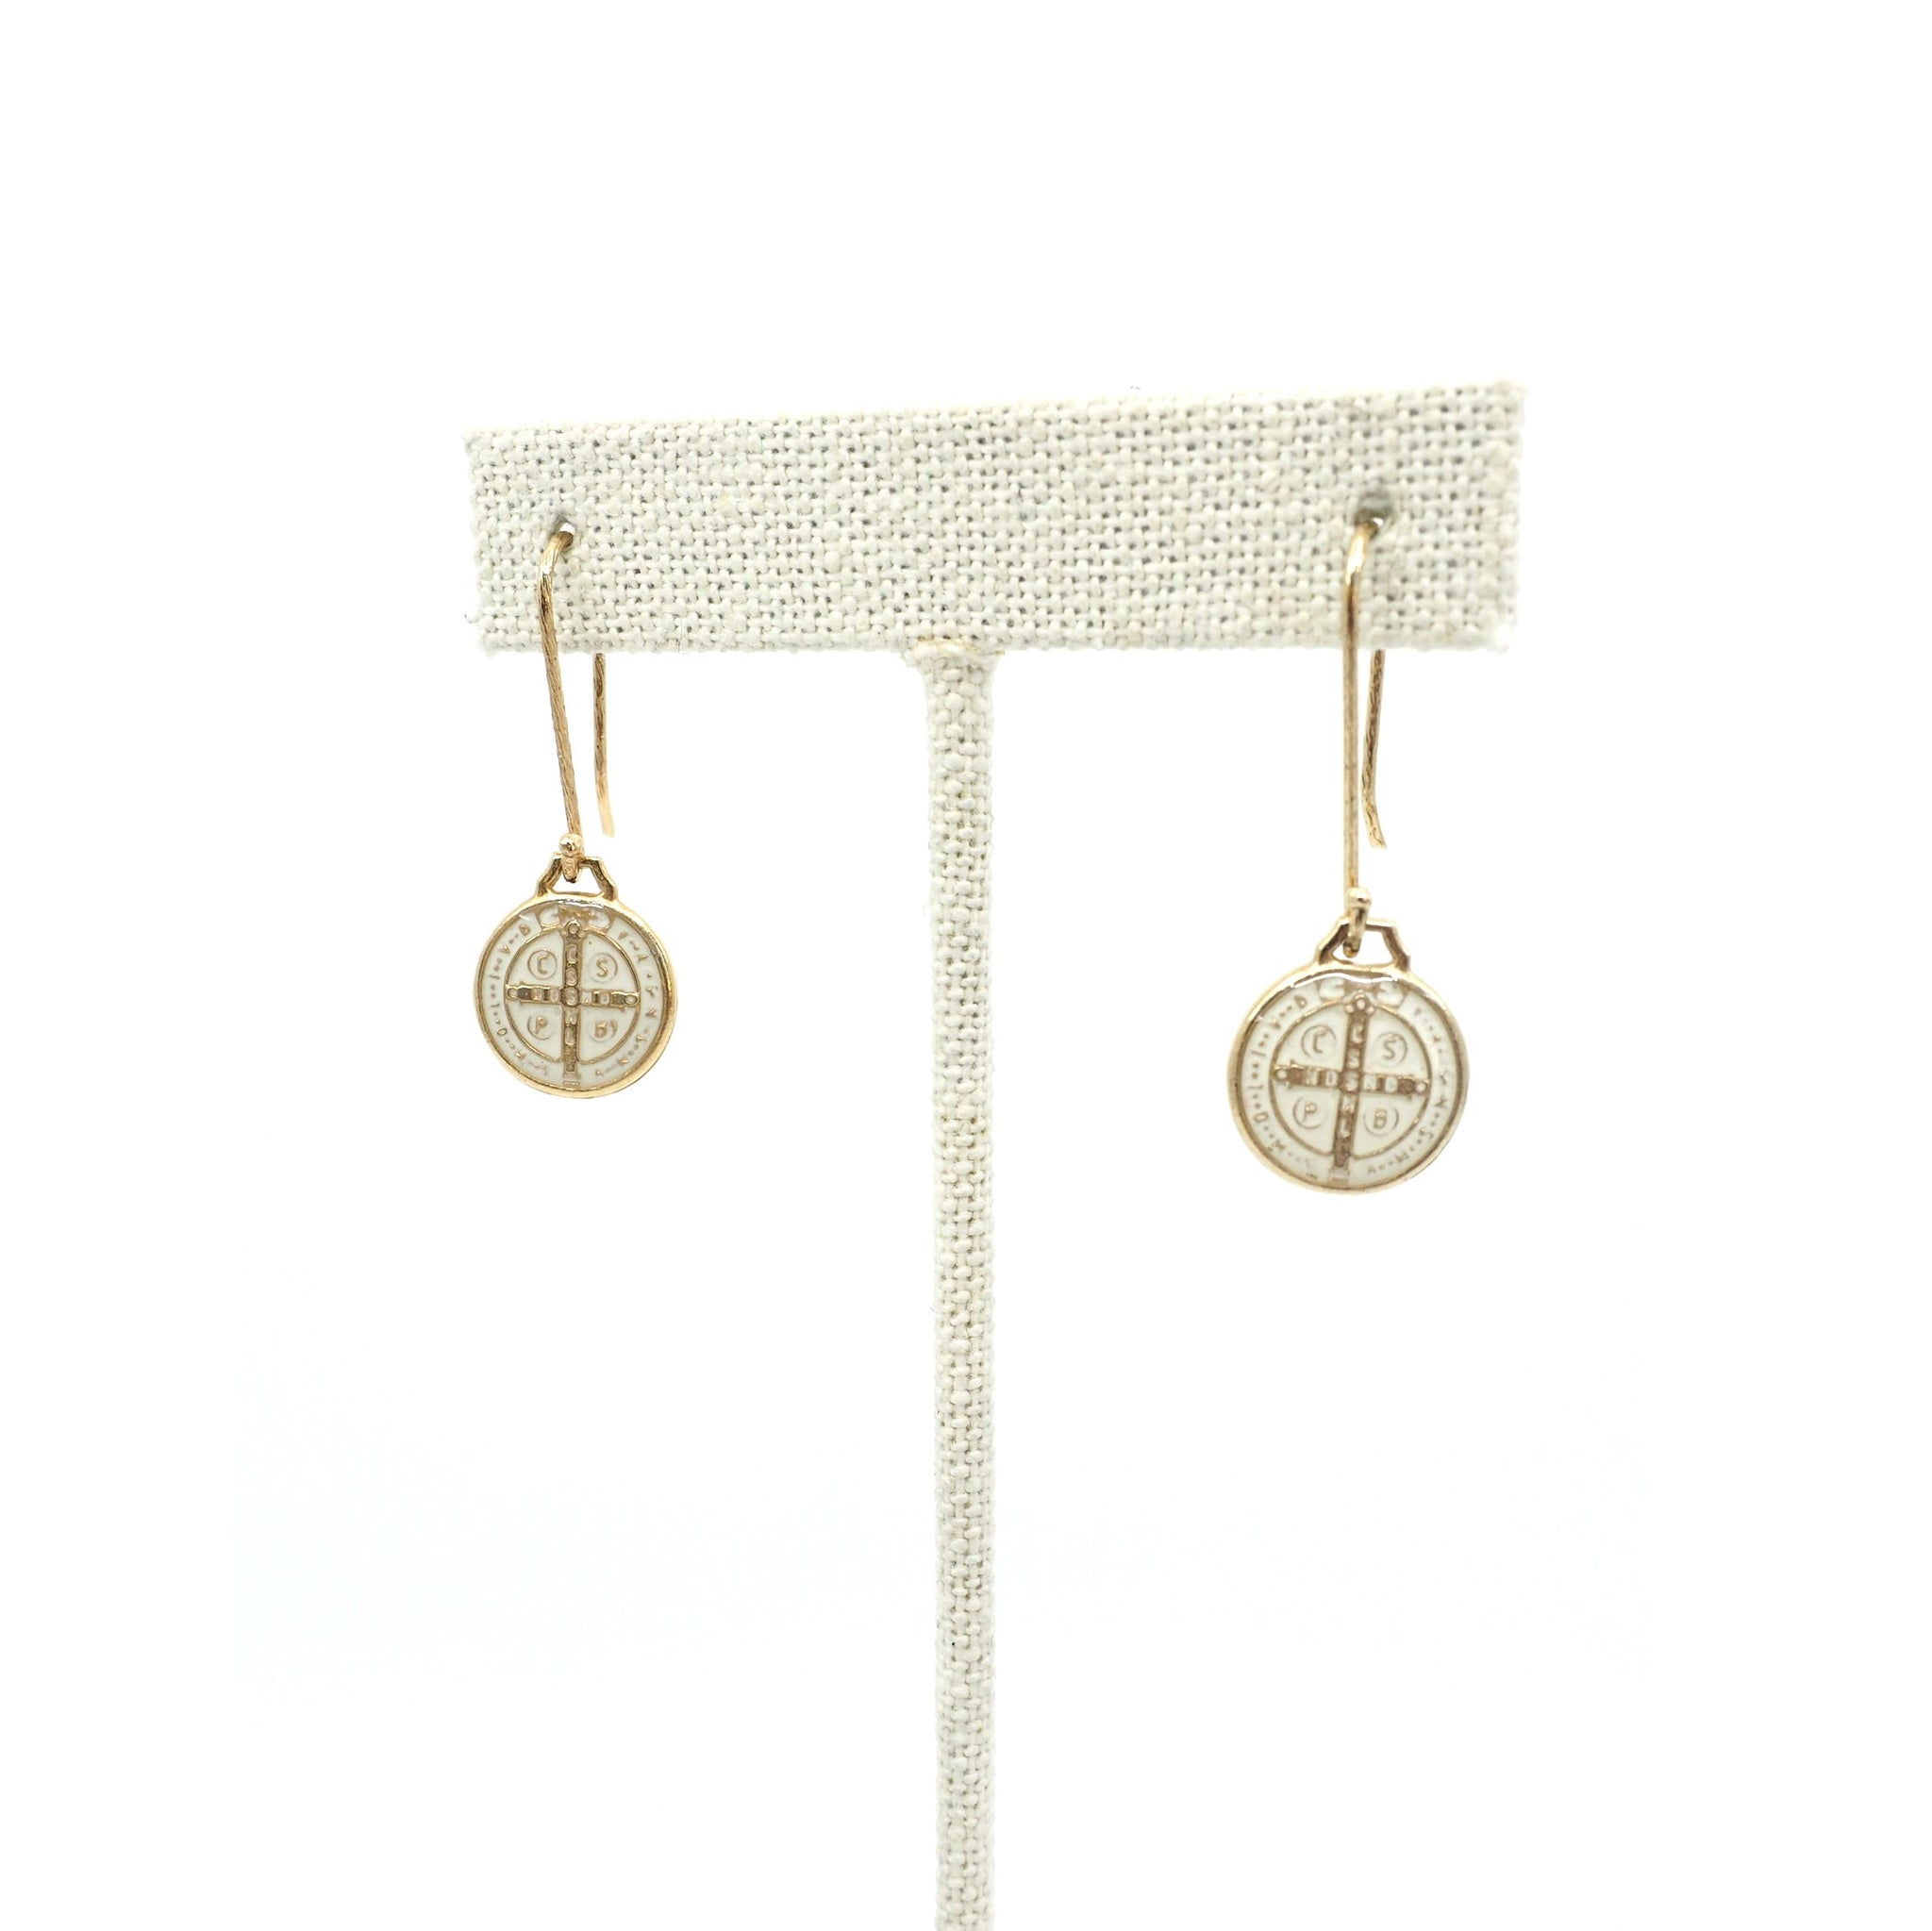 The St. Benedict Earrings